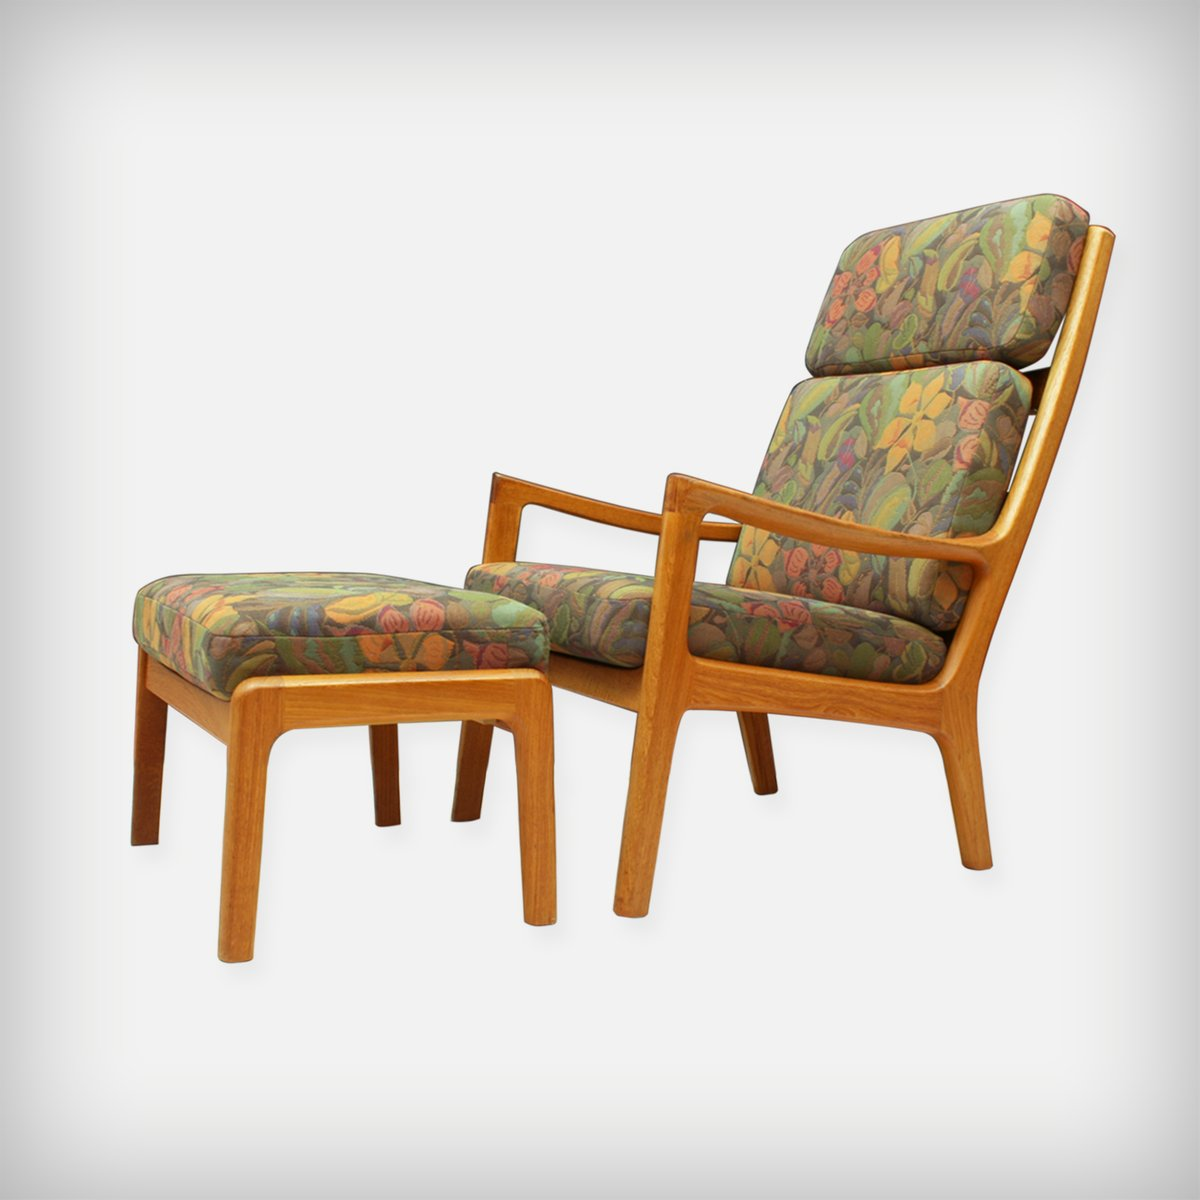 Peachy Danish Teak Senator Lounge Chair With Ottoman By Ole Wanscher For Poul Jeppesens Mobelfabrik A S 1970S Gmtry Best Dining Table And Chair Ideas Images Gmtryco